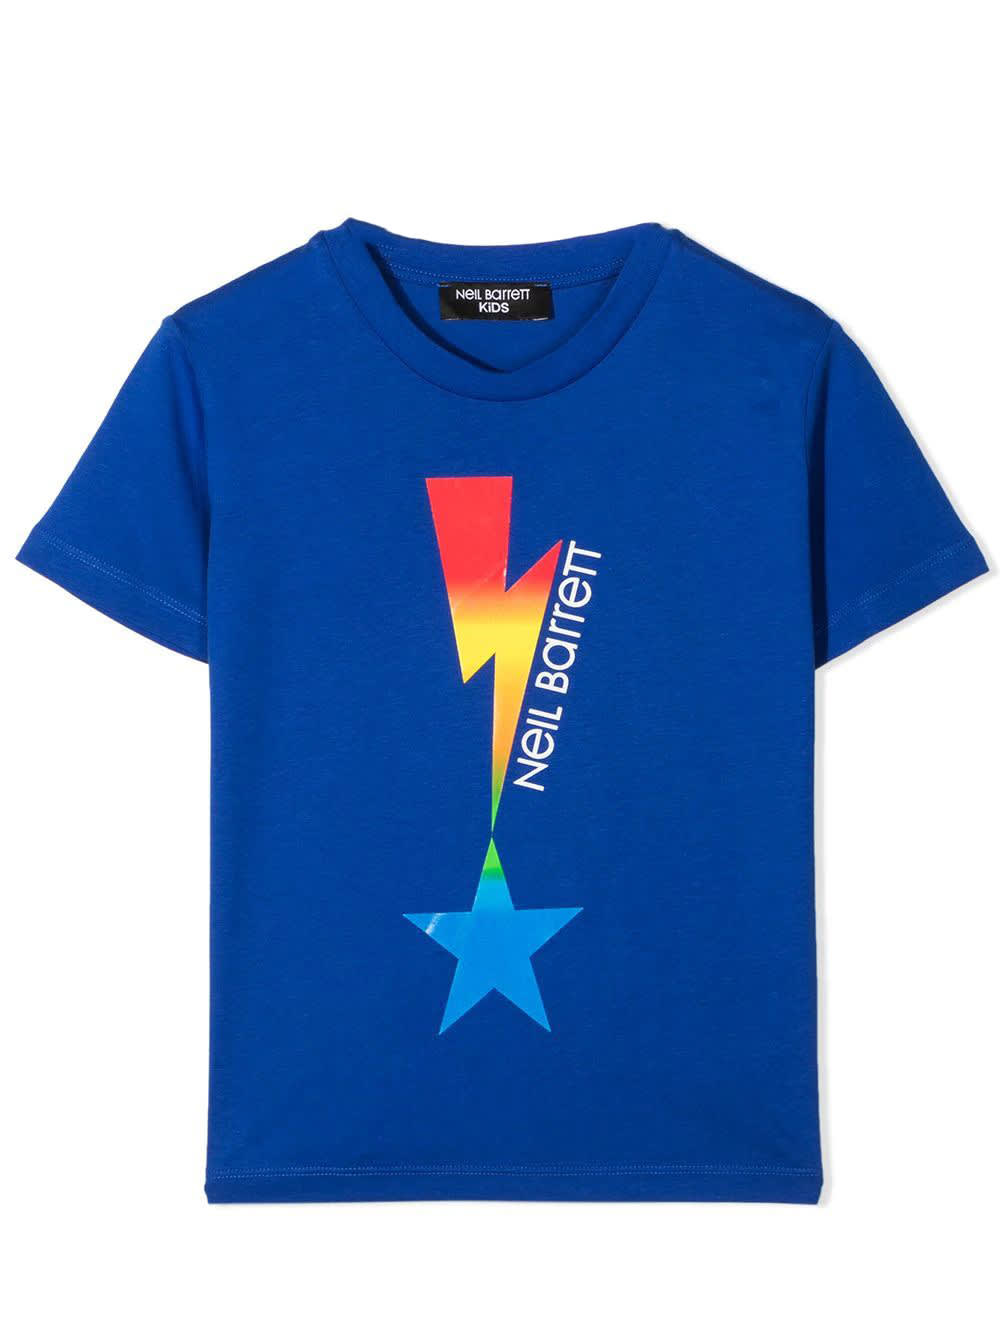 Neil Barrett Kids' Print T-shirt In Royal